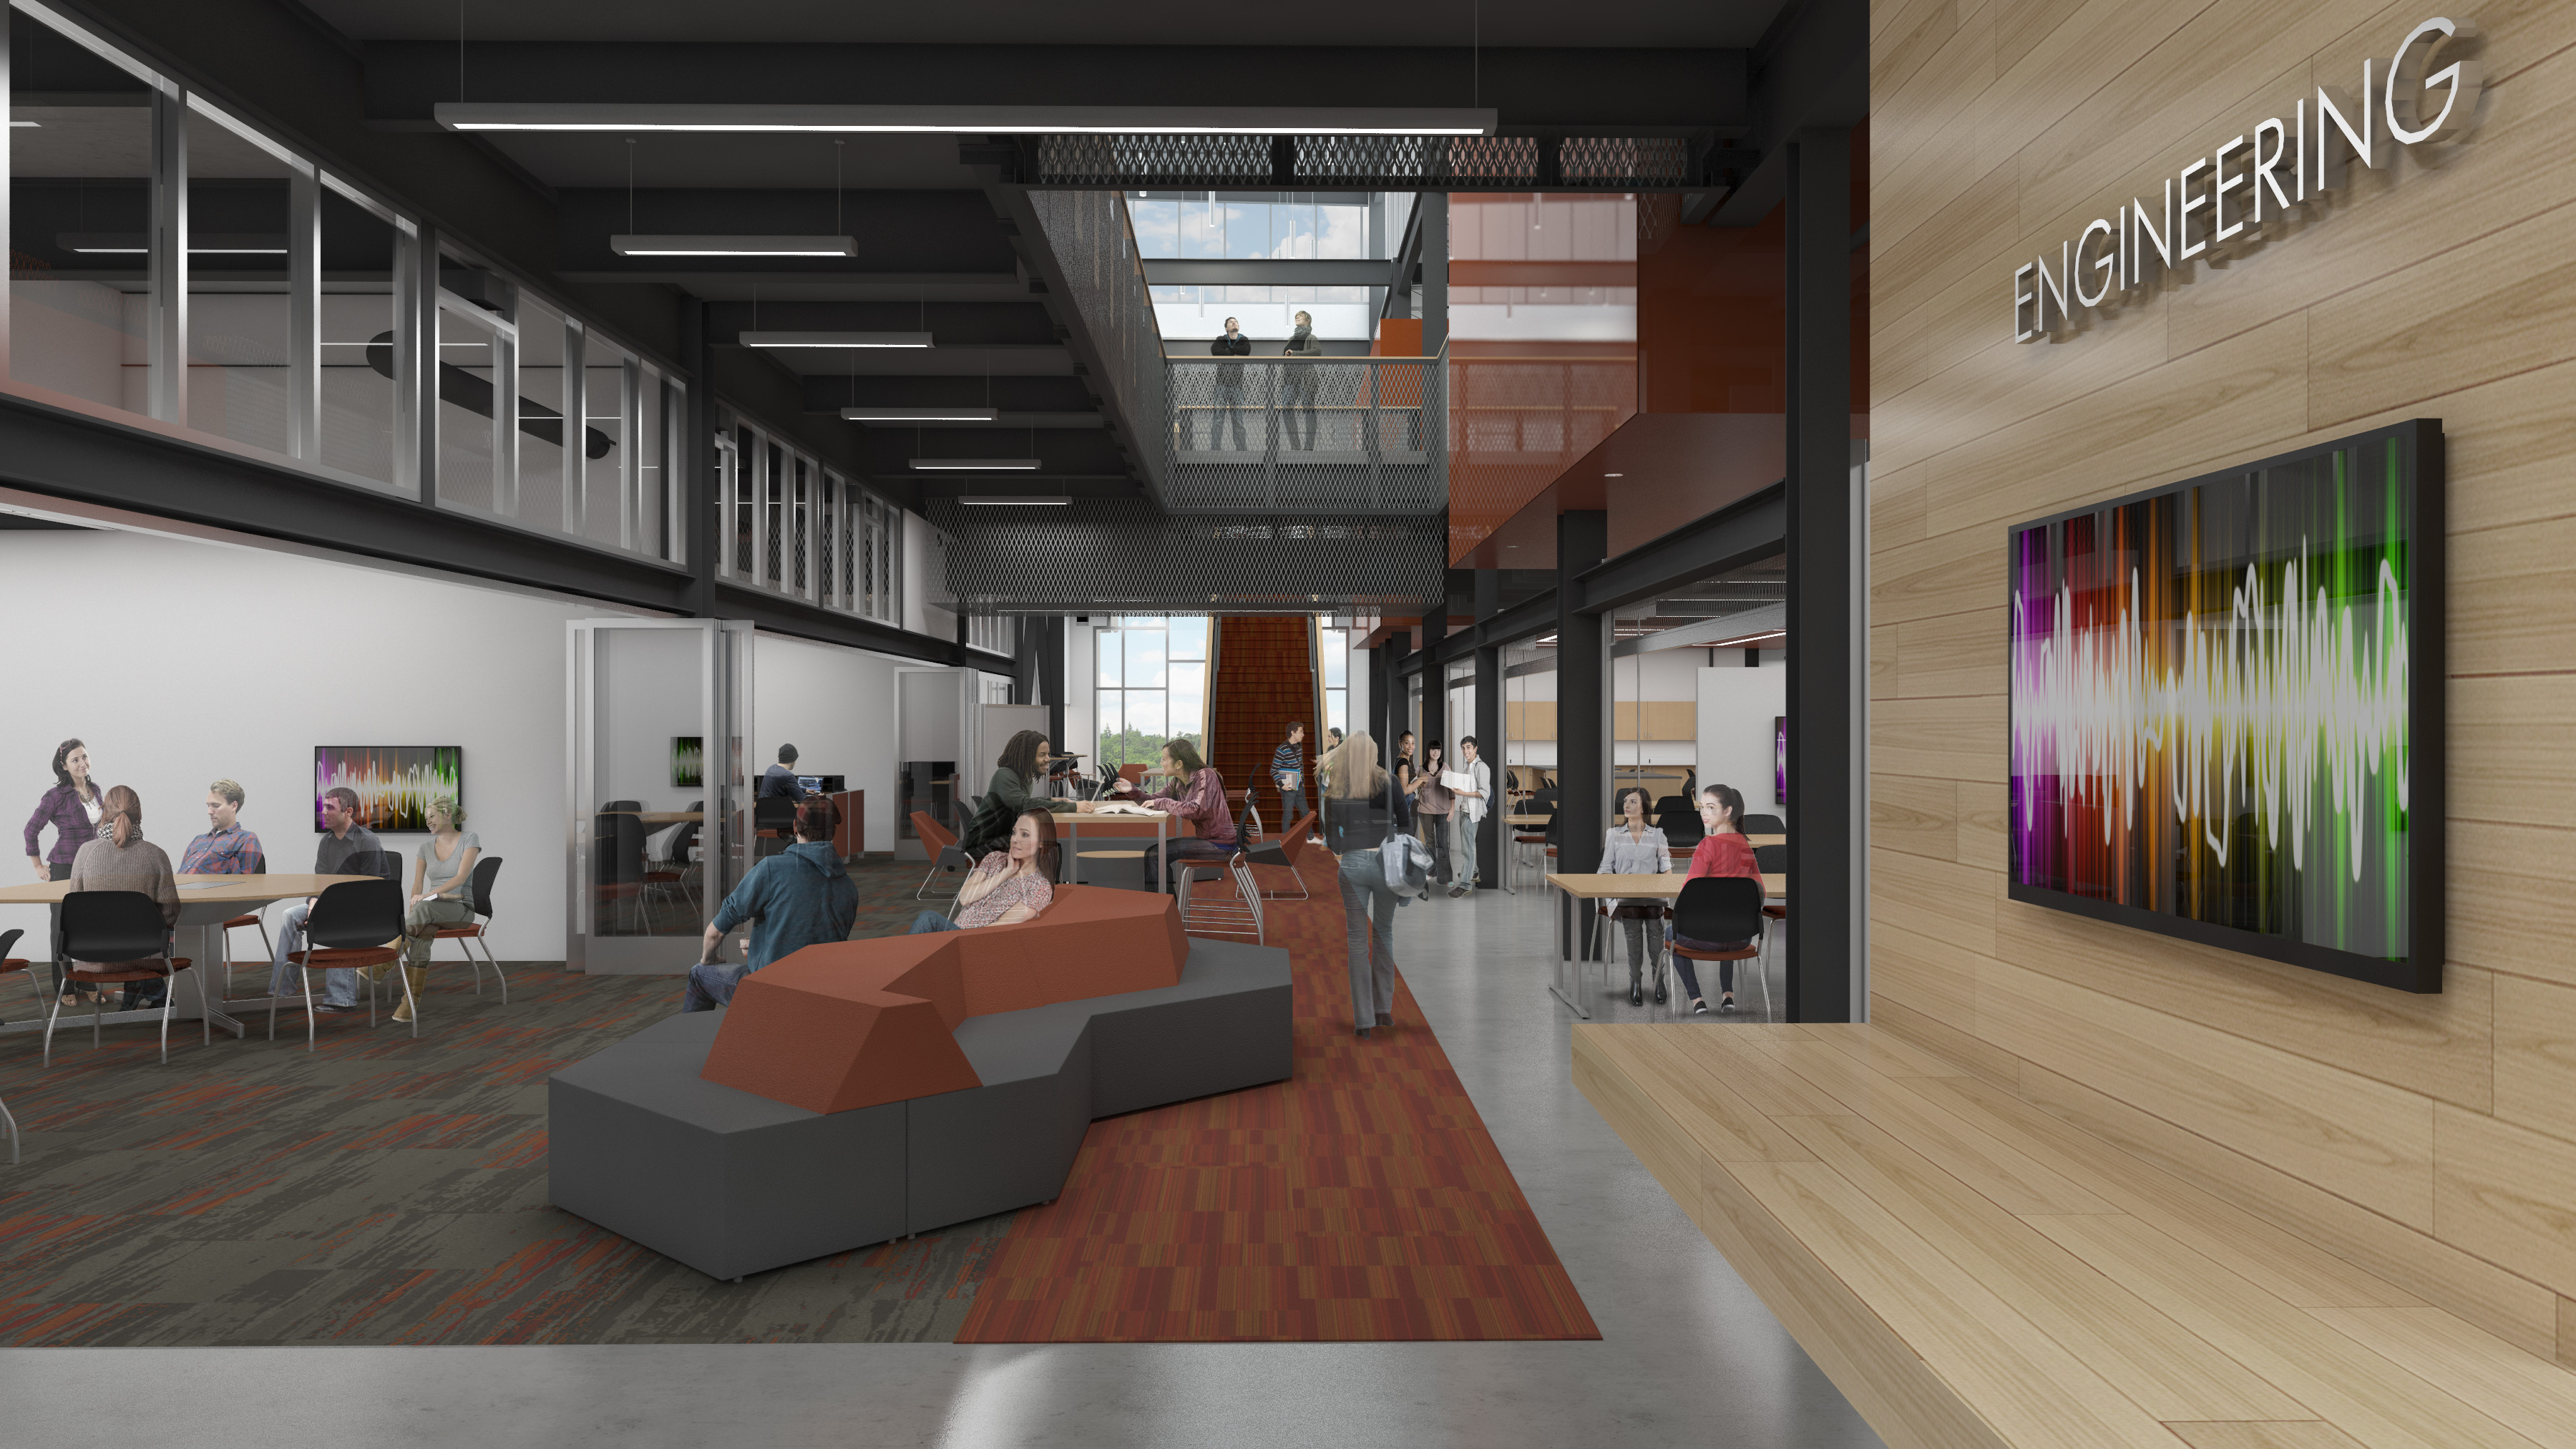 The Missouri Innovation Campus will replicate the modern workplace and promote interdisciplinary collaboration. Learn more about this innovative program at: http://goo.gl/pzrXbO